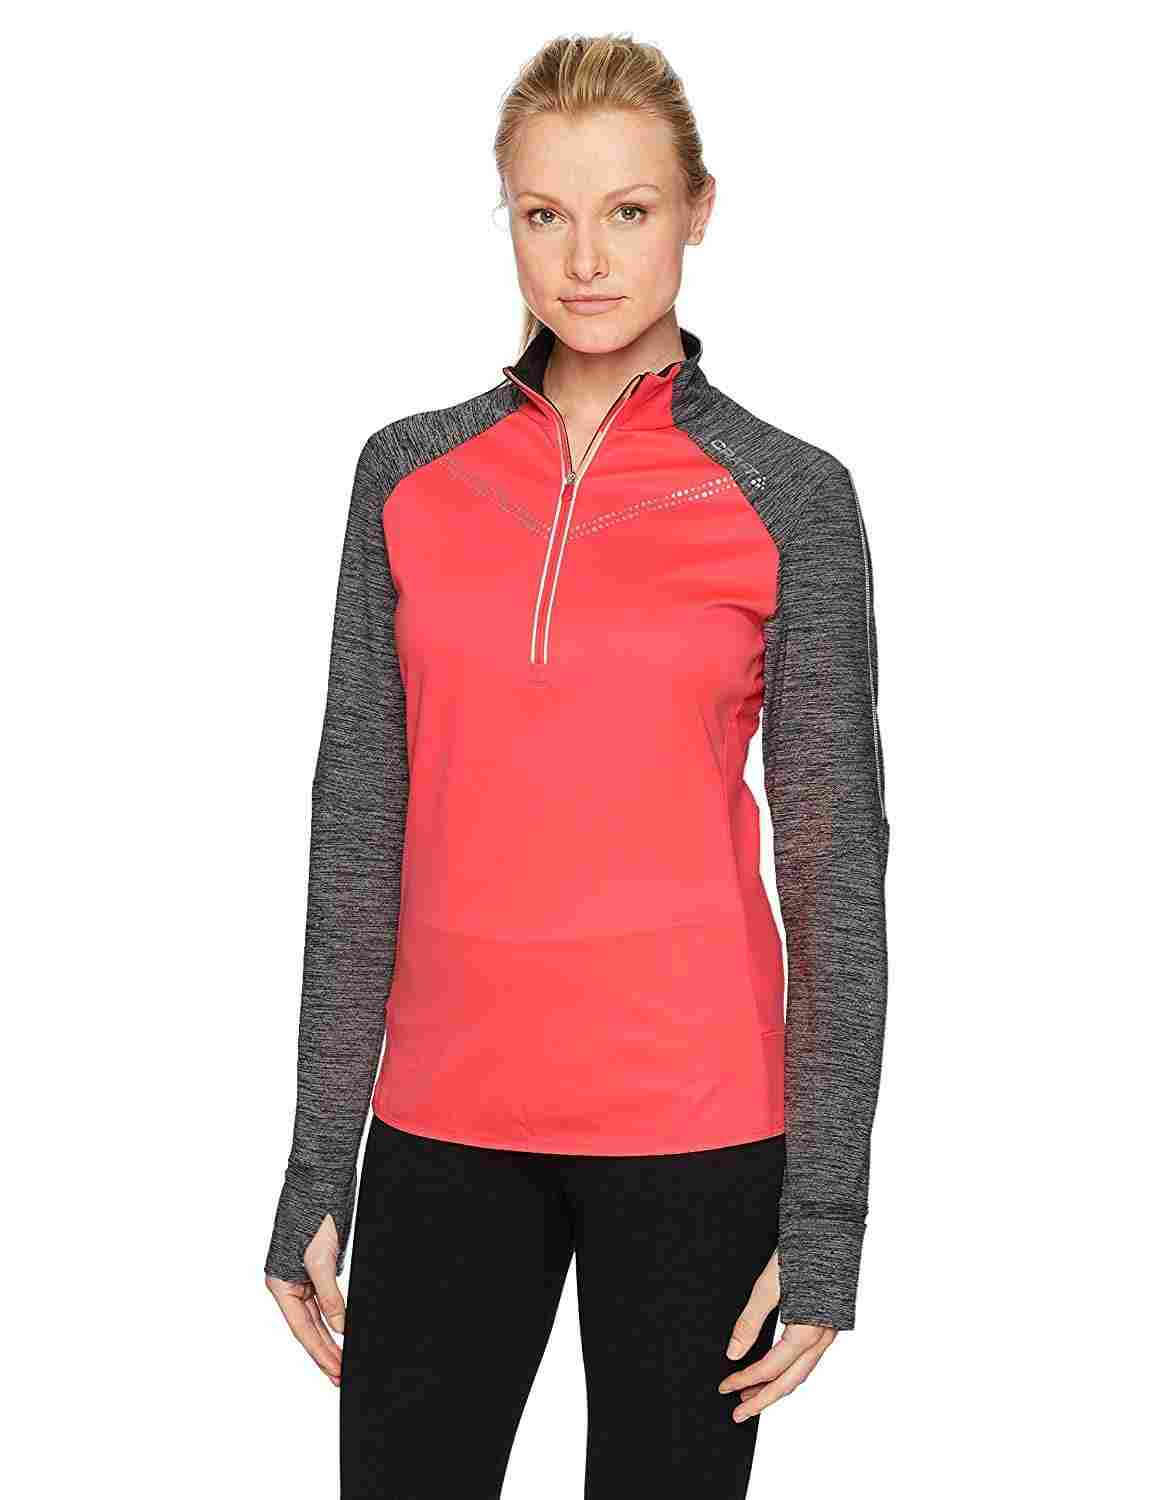 8. Craft Brilliant 2.0 Thermal Wind Top